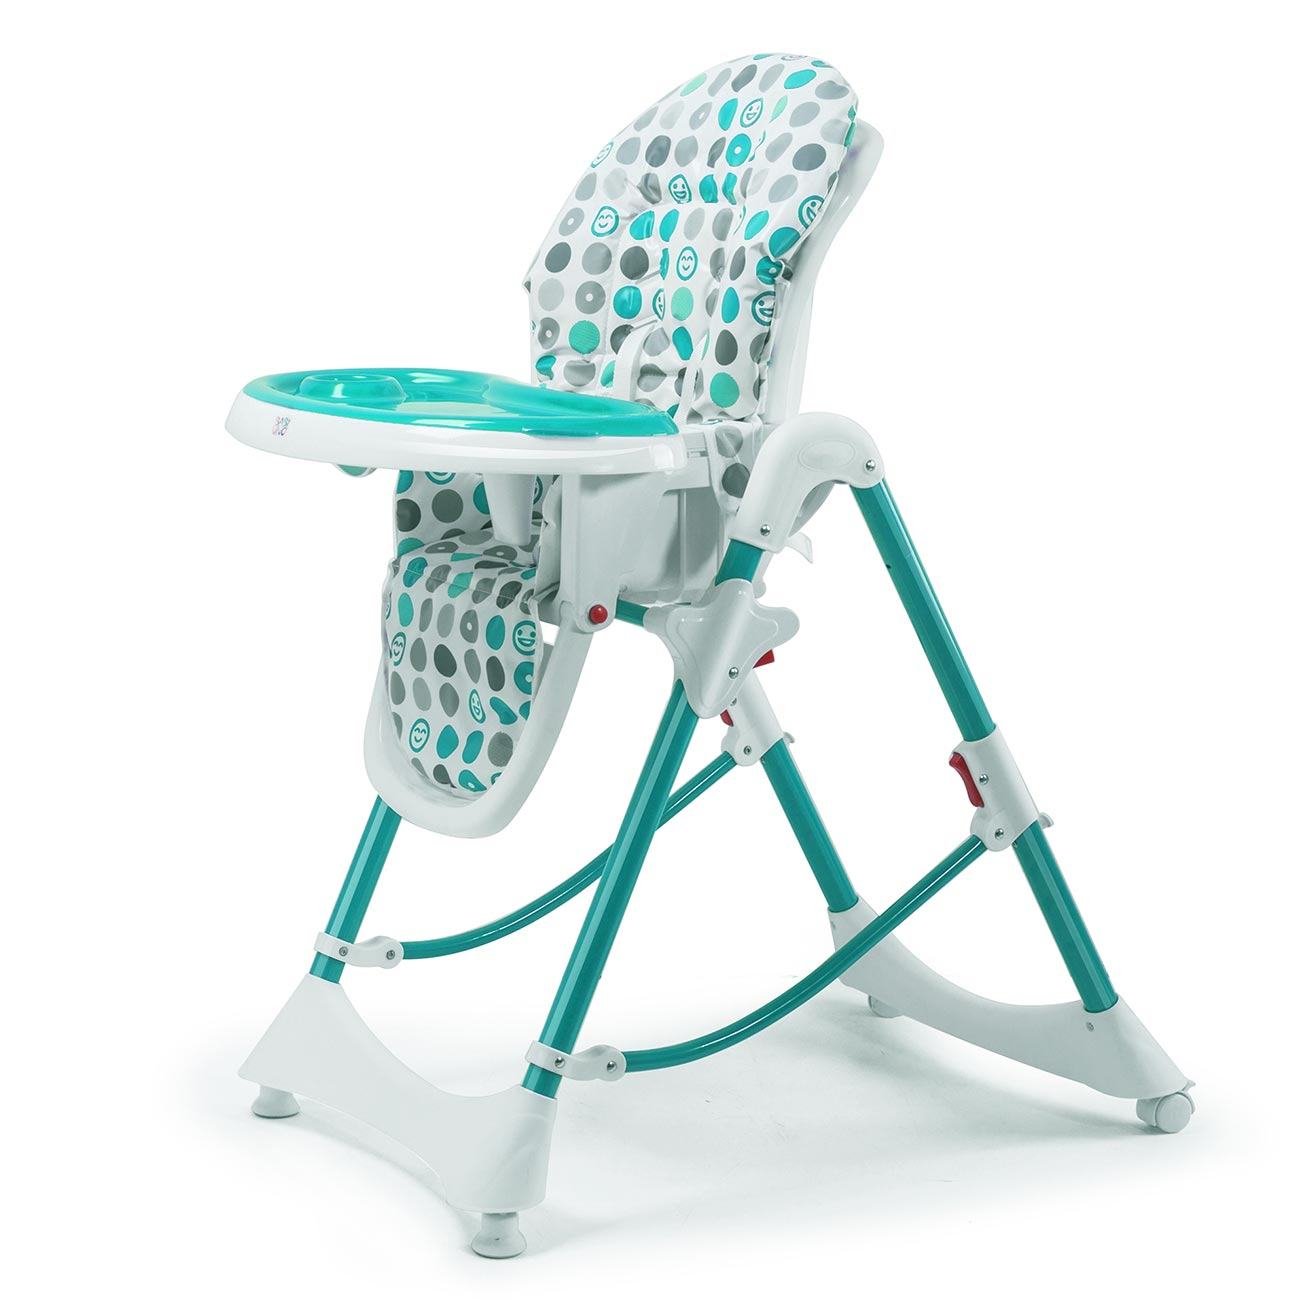 baby vivo chaise haute pour b b enfant en plastique tippy en turquoise b b enfant. Black Bedroom Furniture Sets. Home Design Ideas